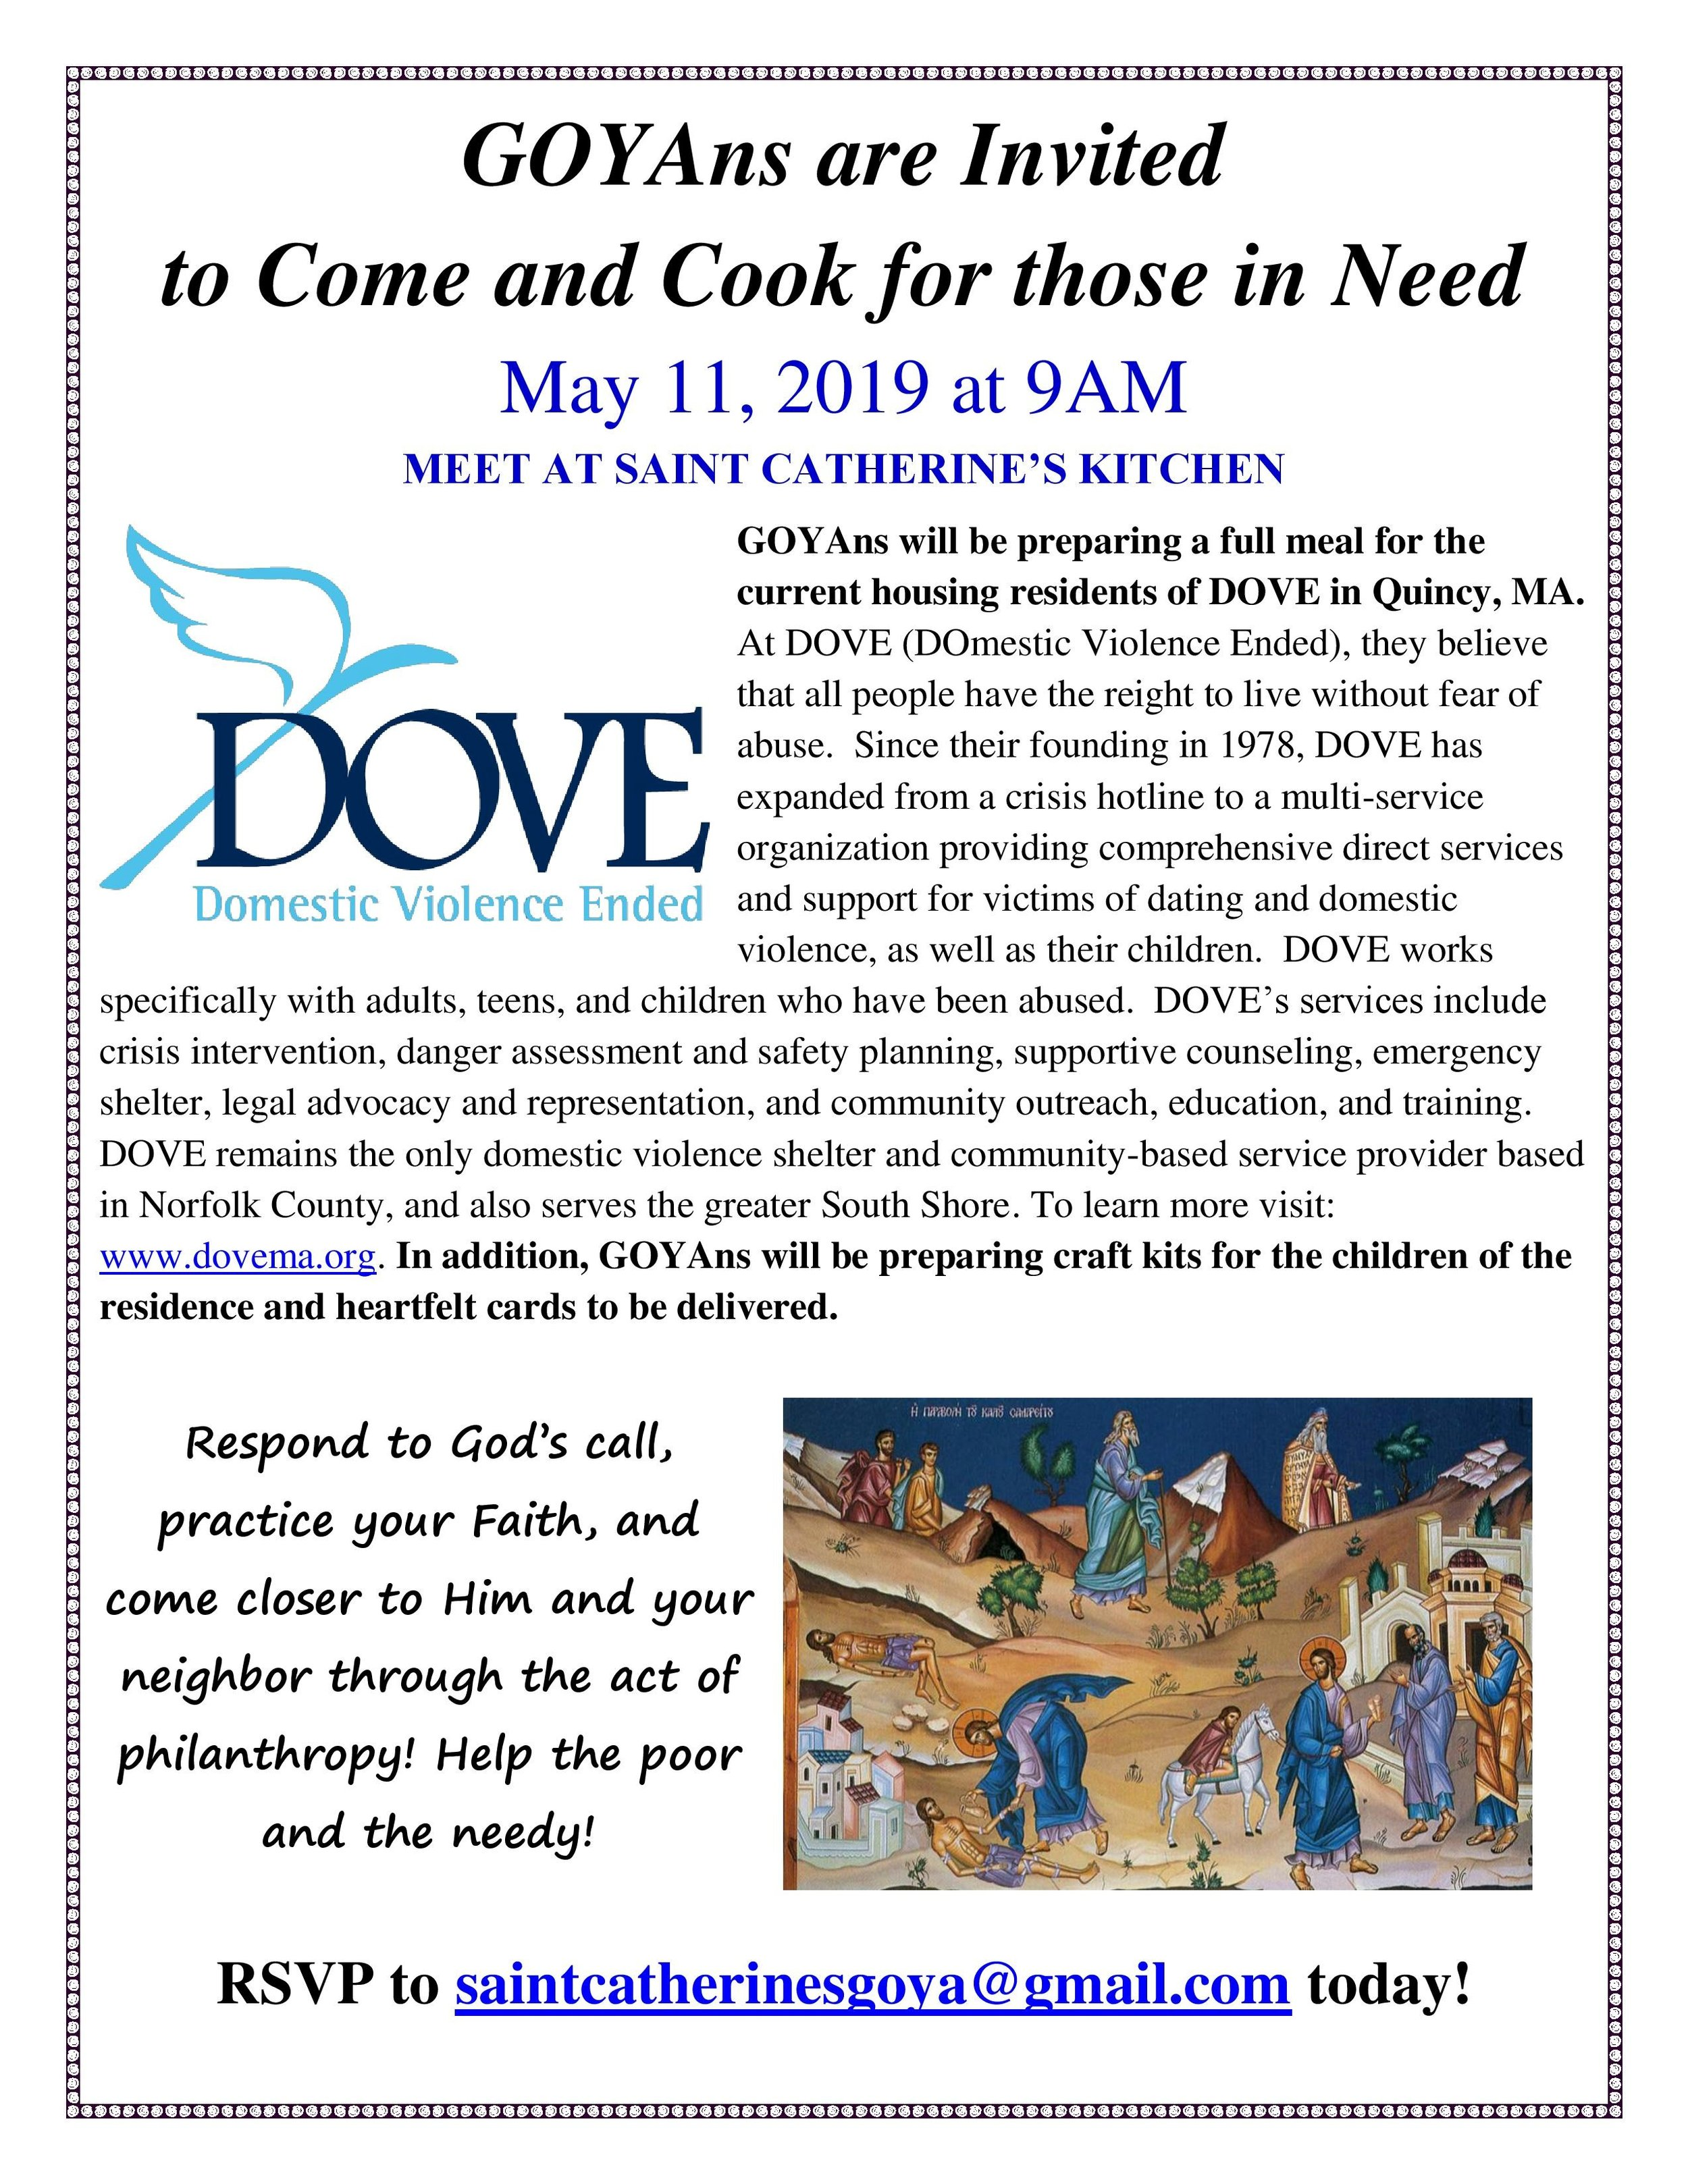 GOYA Dove Feed Needy-page-001.jpg